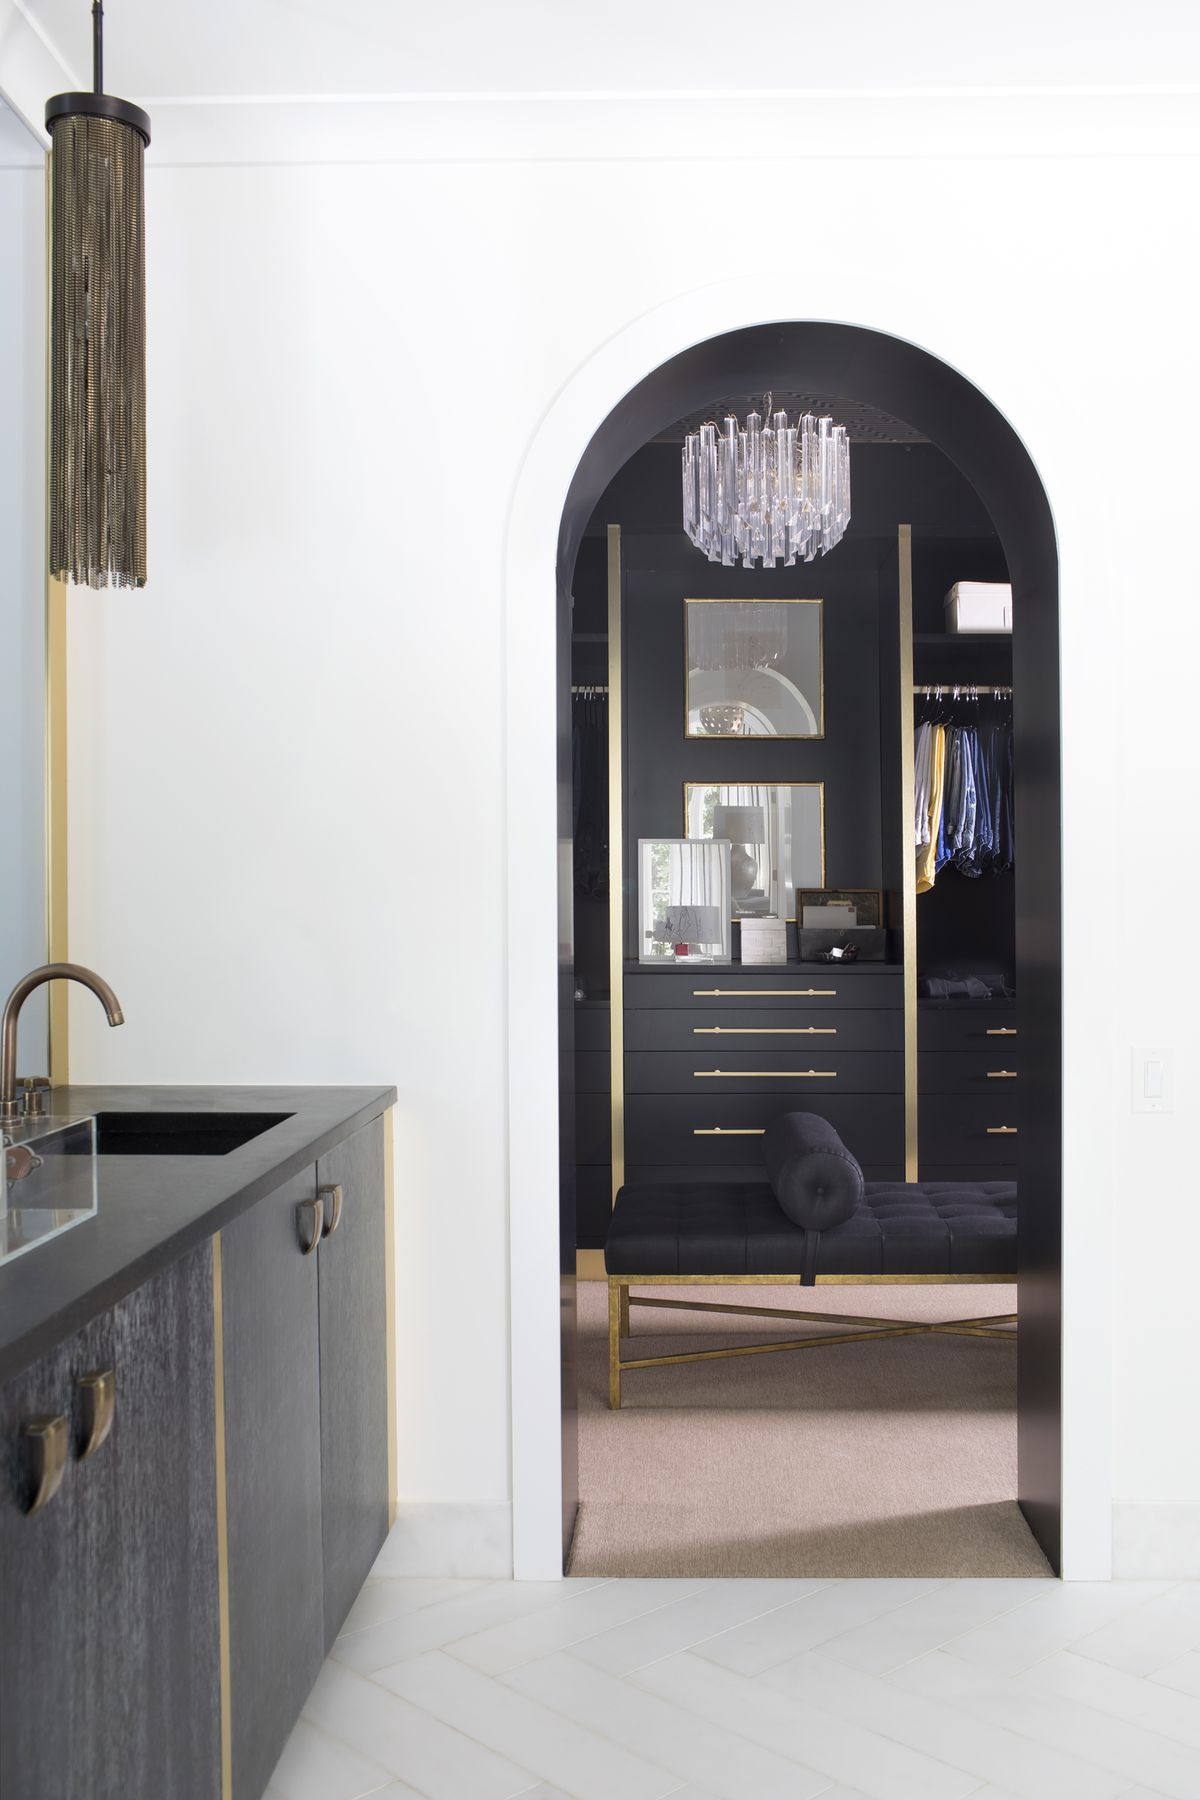 Between the master bathroom and closet, there is a lovely arched doorway. The bathroom is white, the closet is black.